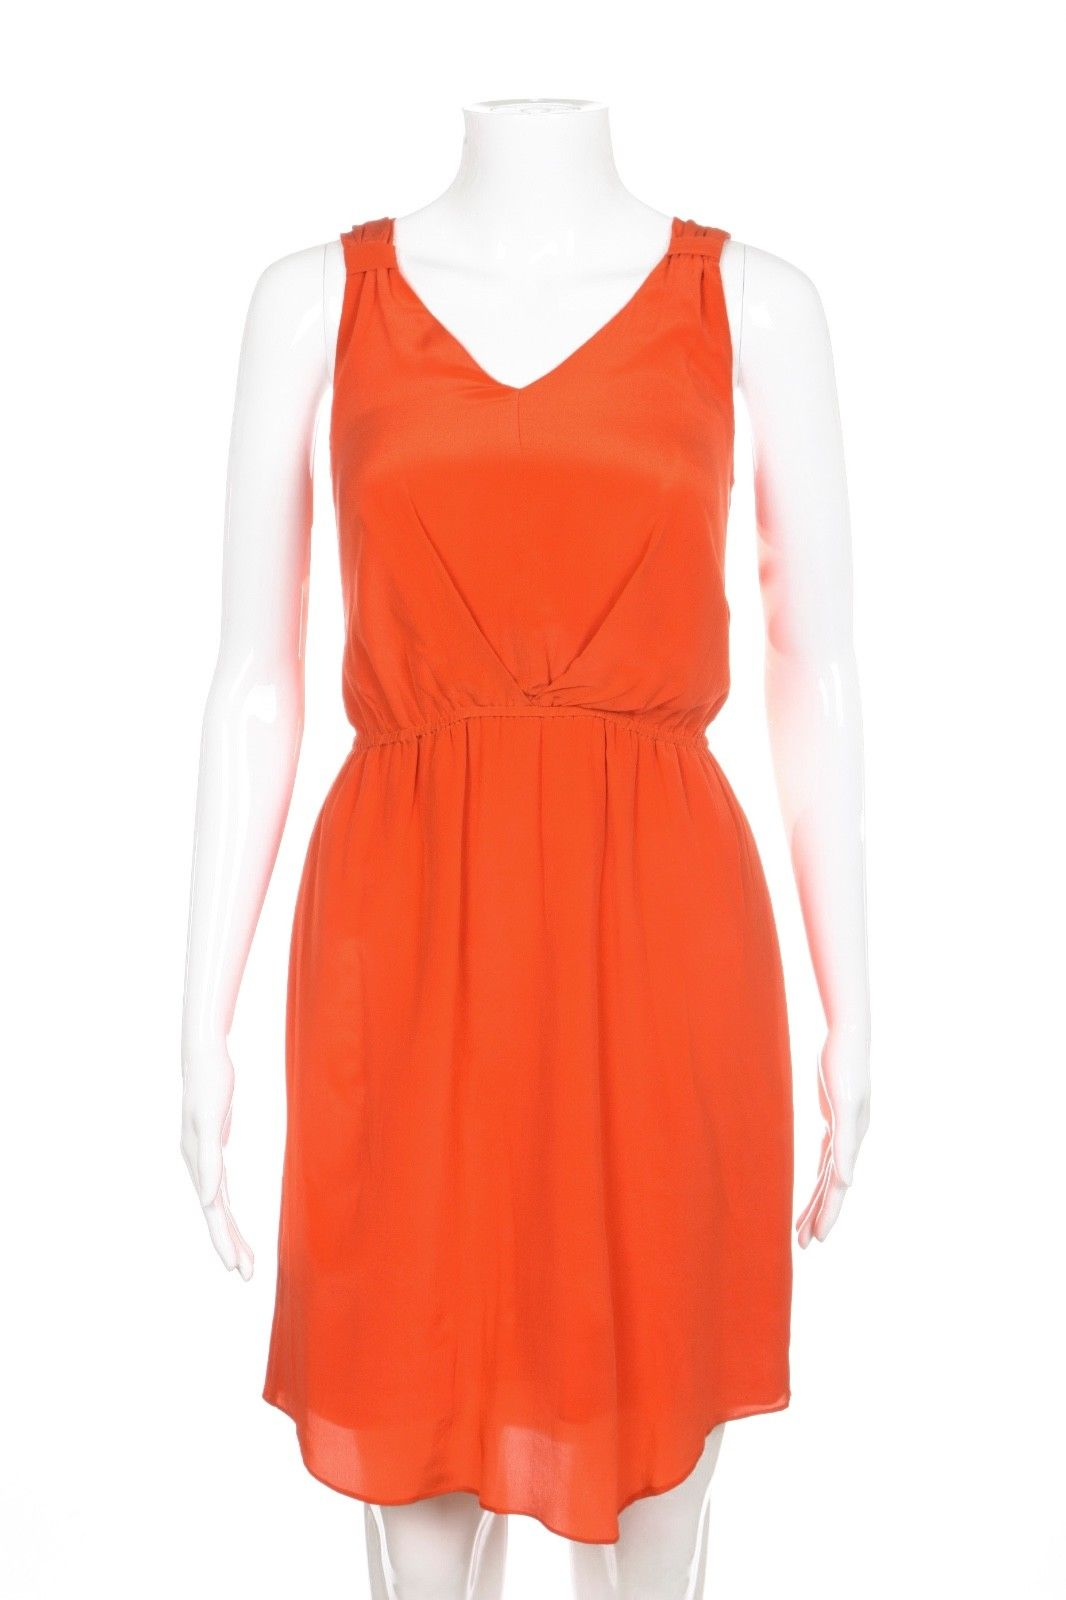 ALEX + ALEX 100% Silk Dress Small Orange Cocktail Elastic Waist Draped